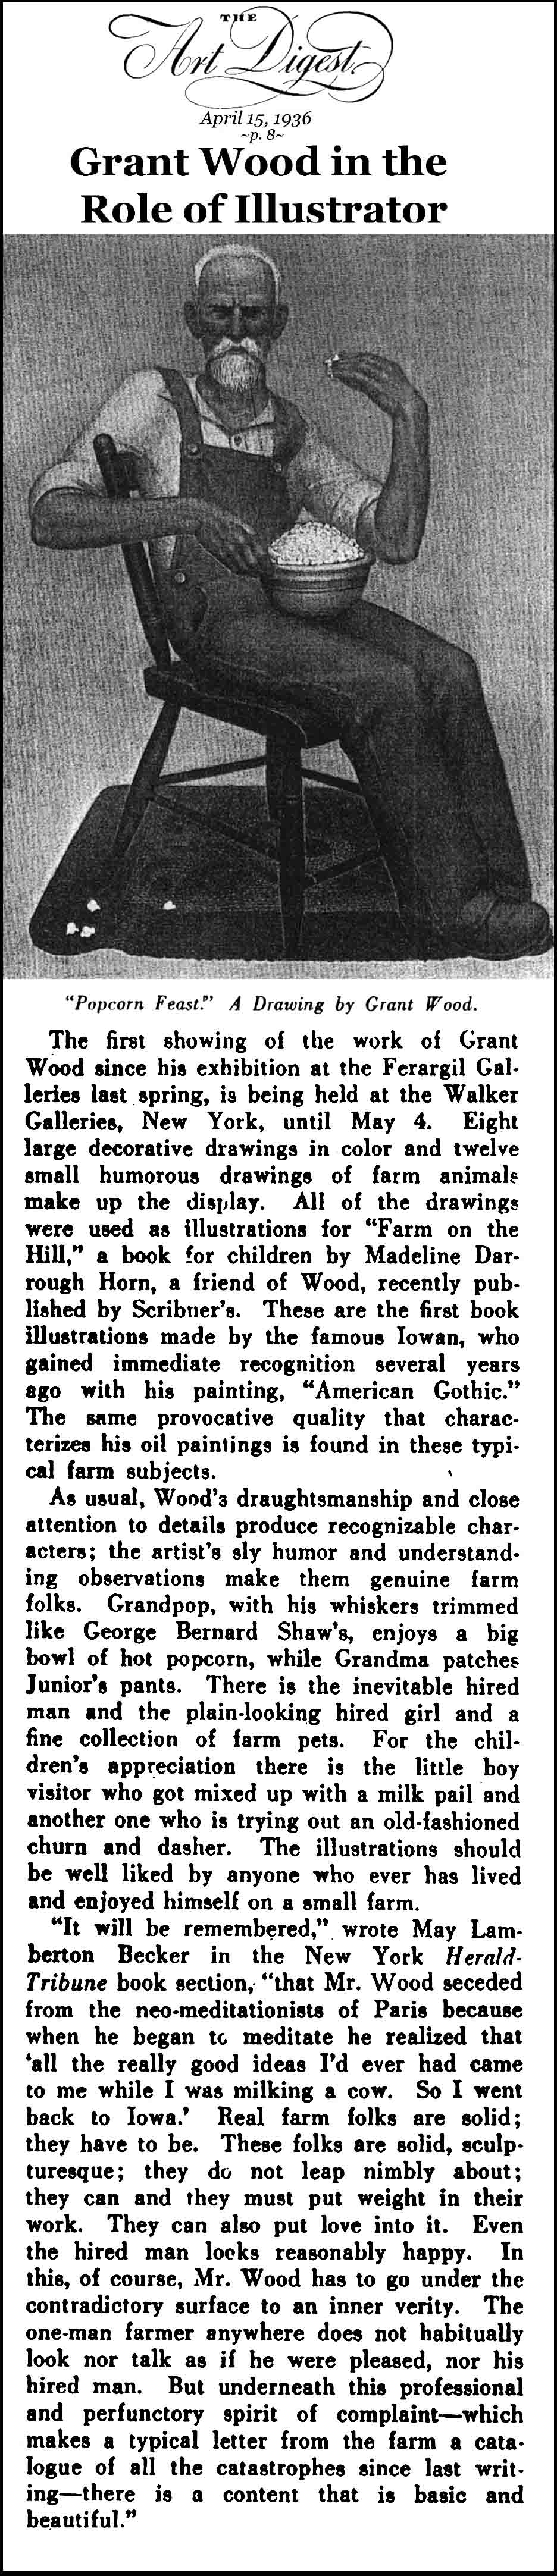 Grant Wood: Iowa as Muse (Art Digest, 1936)